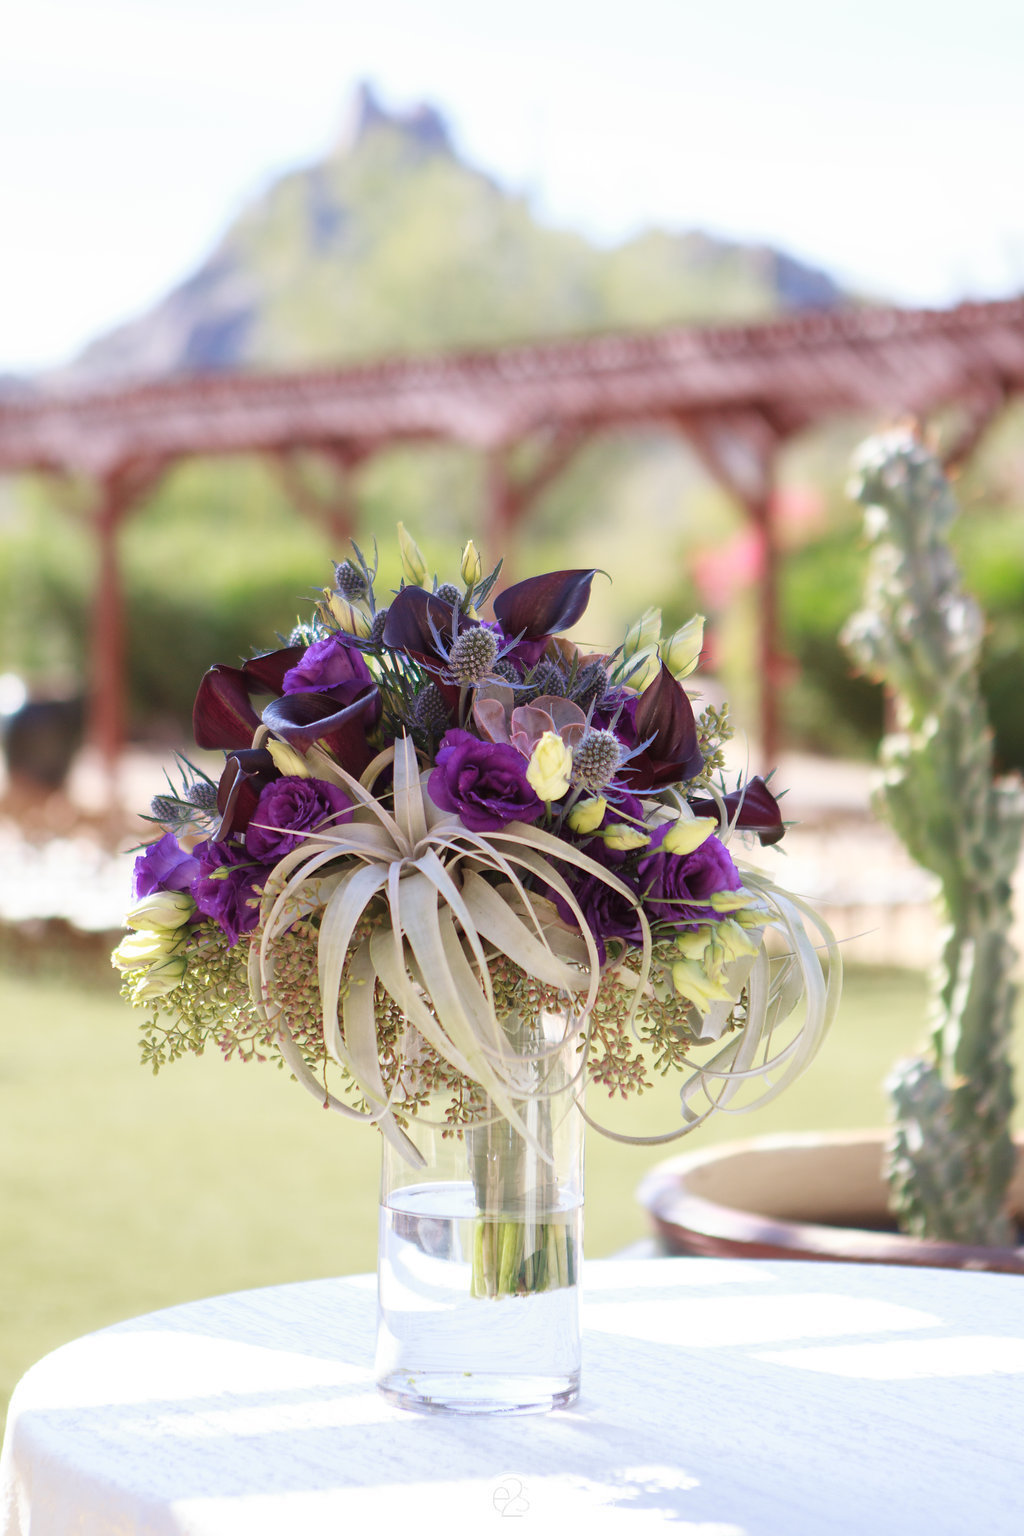 Your-Event-Florist-Arizona-Wedding-Flowers91